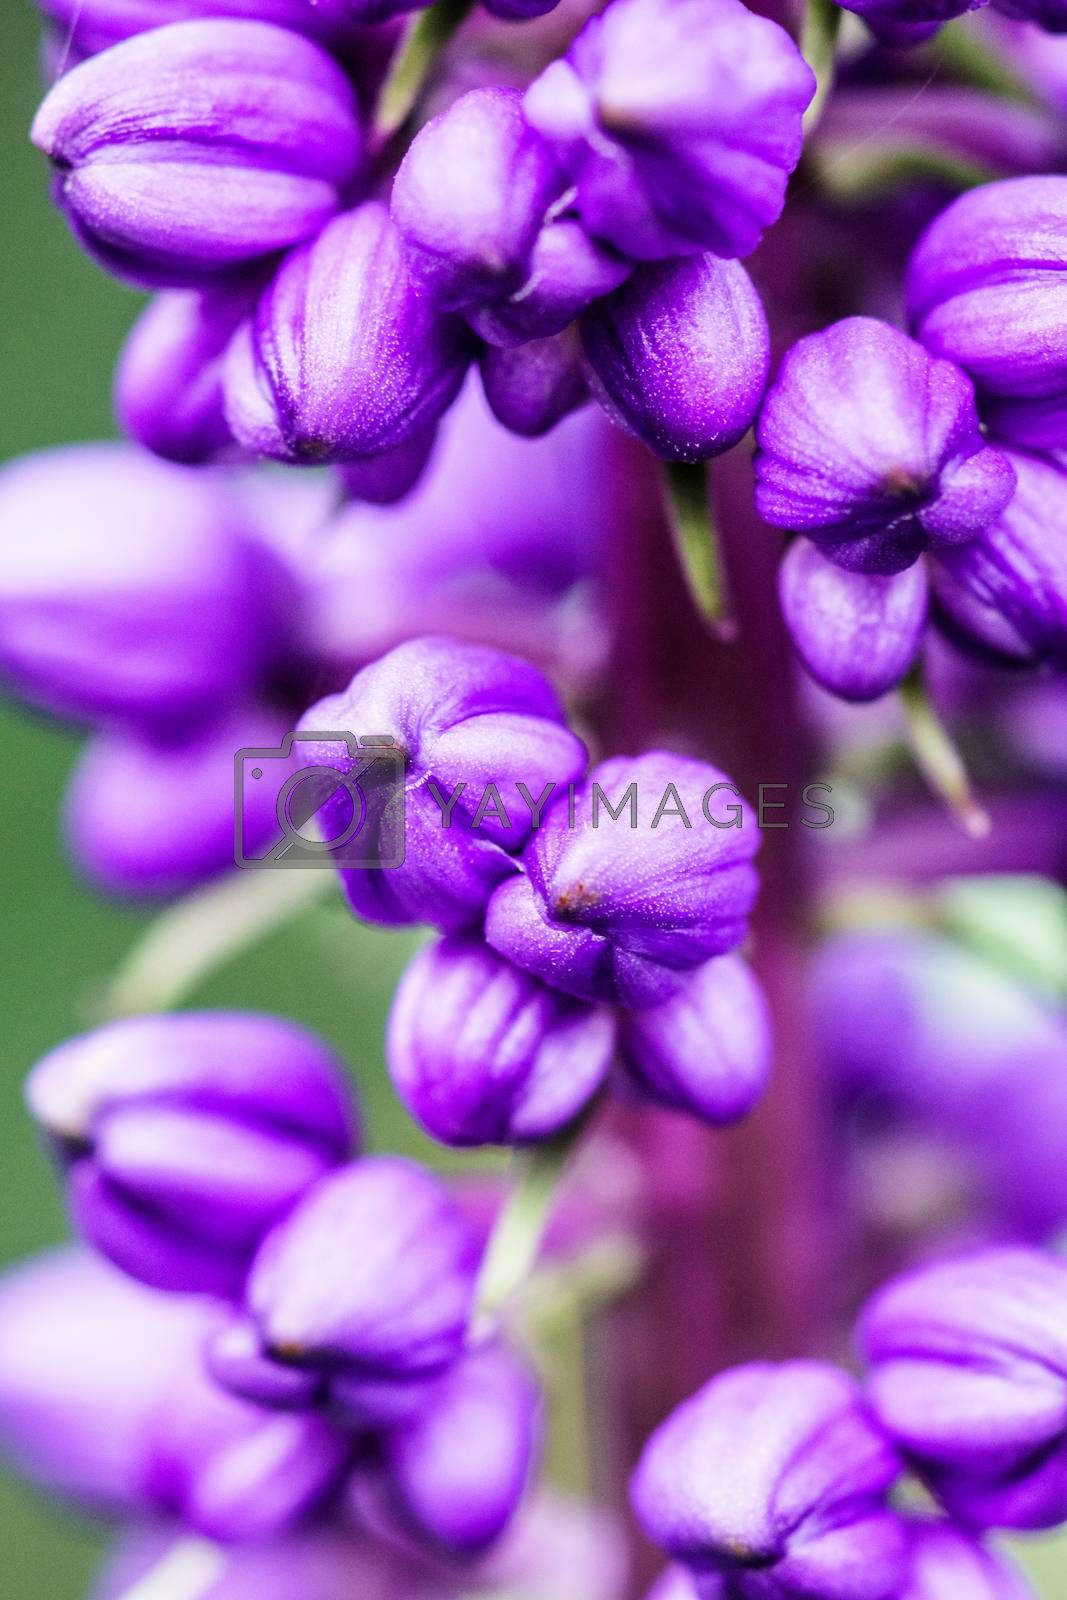 group of small purple flower intropical garden,shallow focus